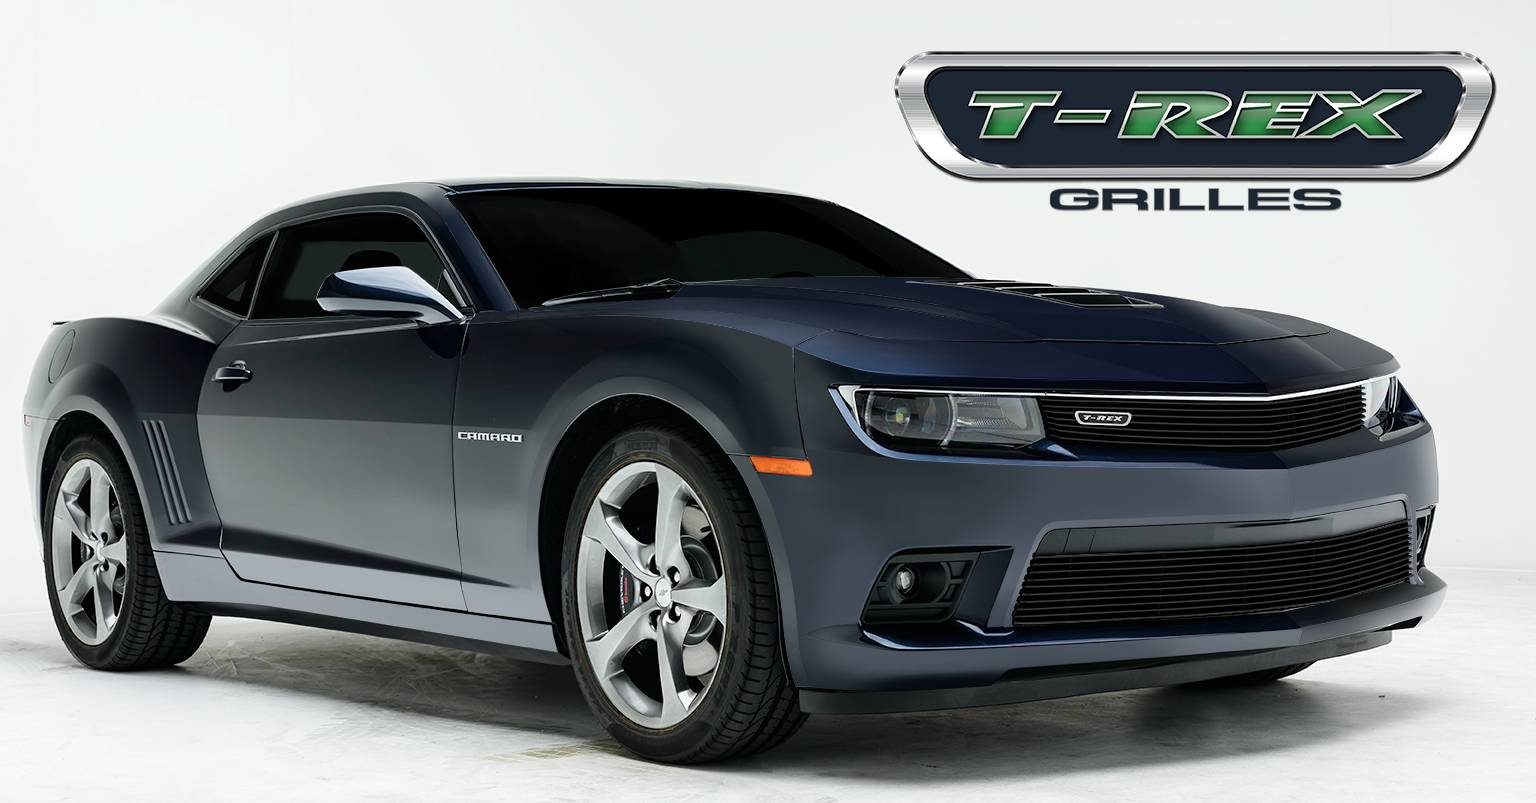 T-REX Grilles - Chevrolet Camaro SS Billet Grille, Bumper, Overlay, 1 Pc, Black Powdercoated Aluminum Bars - Pt # 25032B